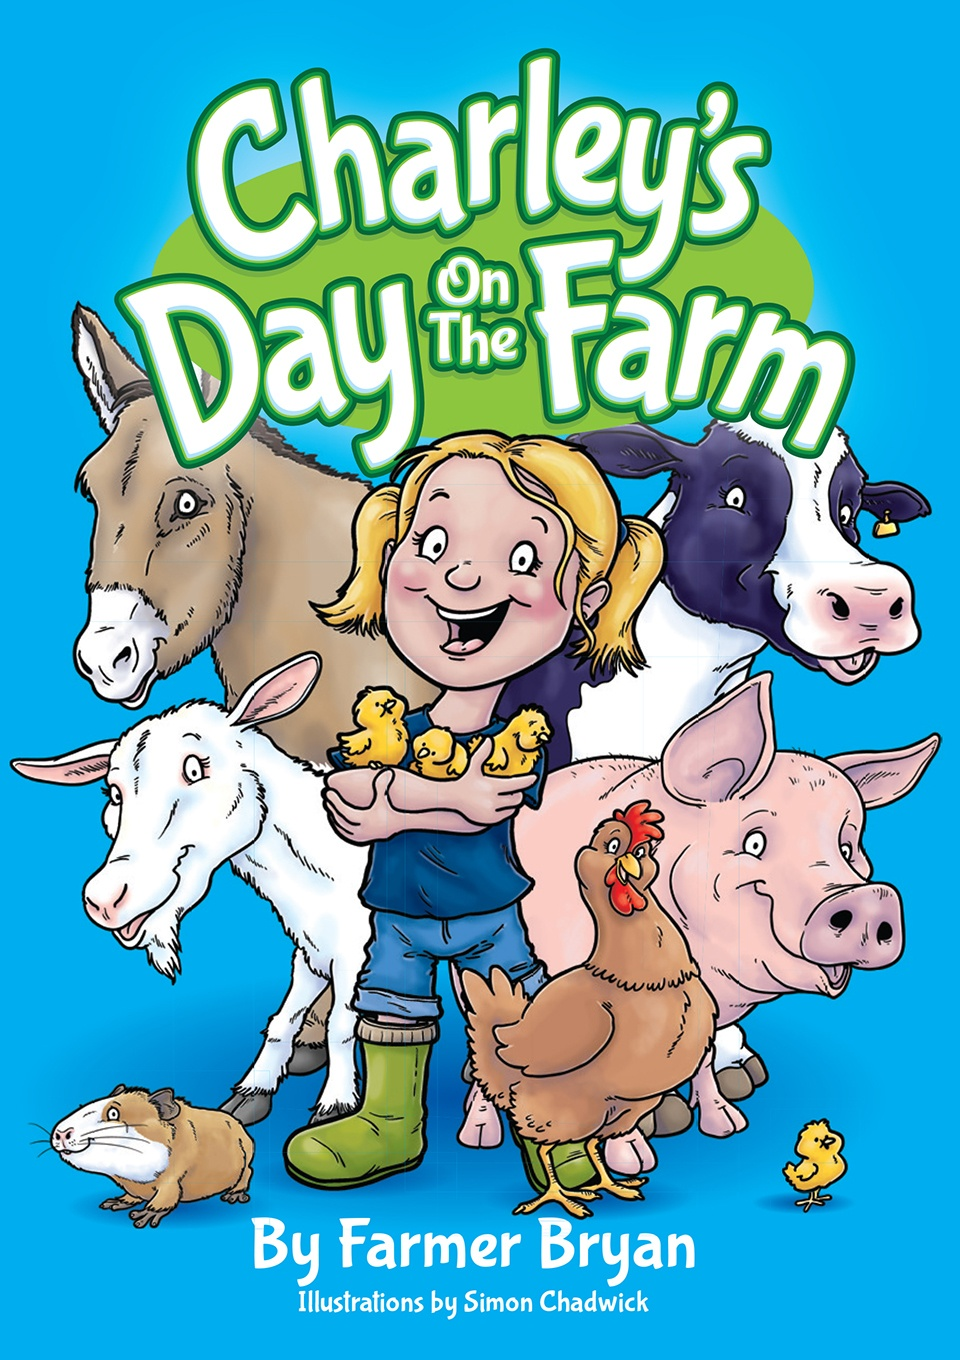 Charleys Day On The Farm_1.jpg